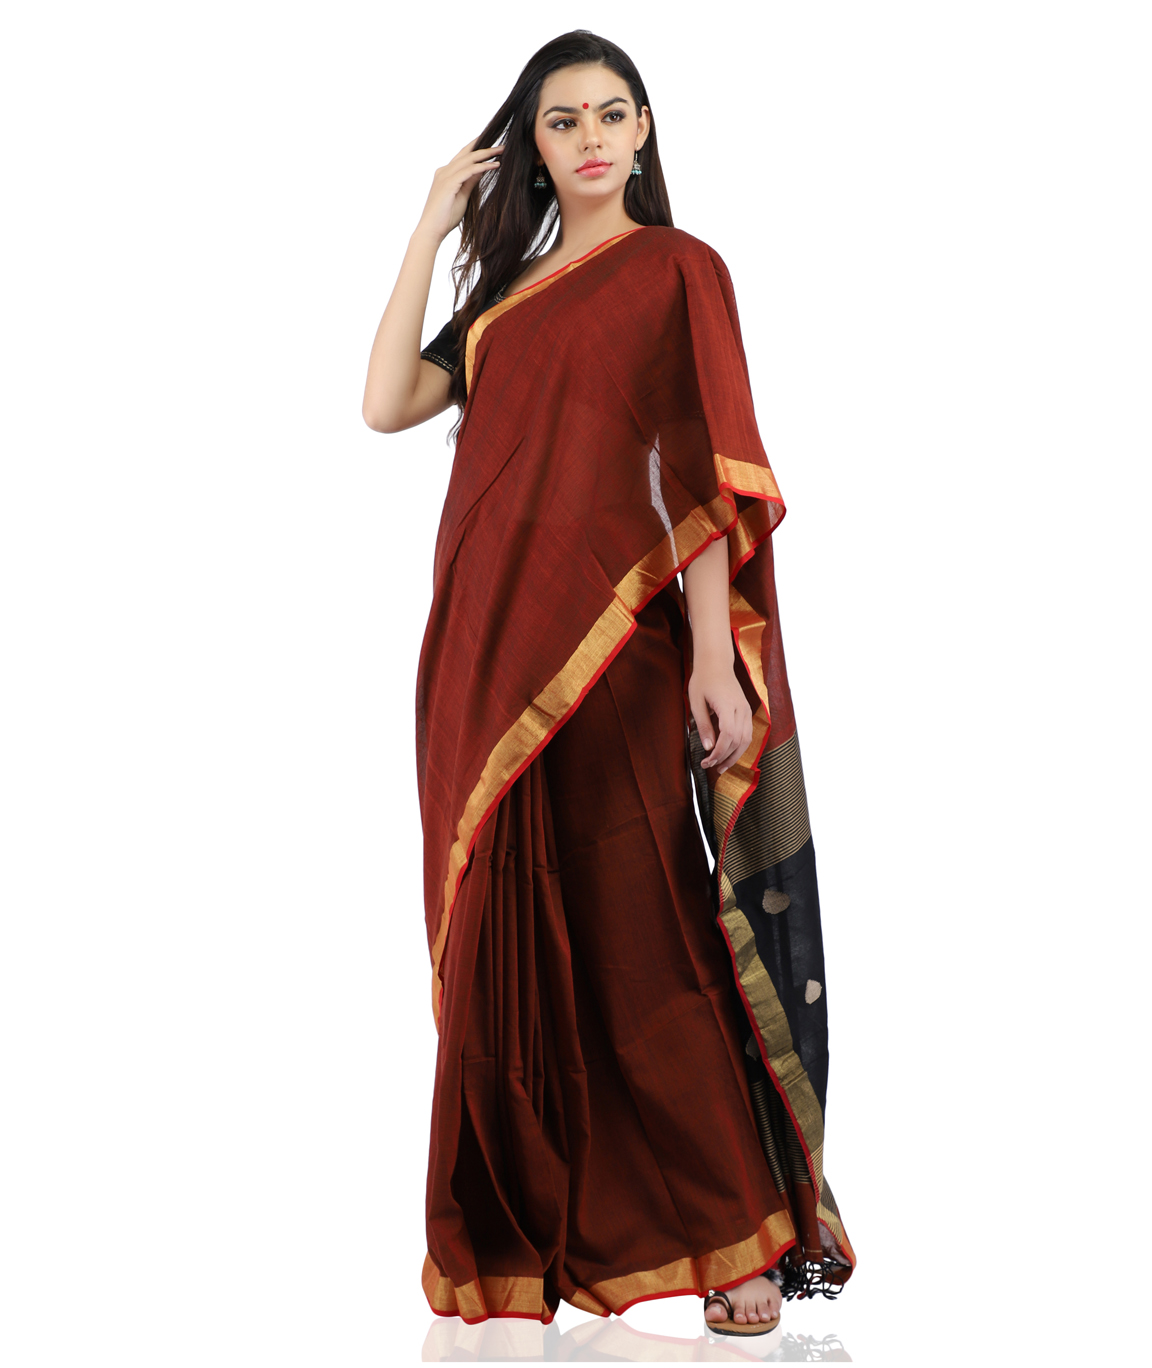 Pure Cotton Handloom Saree in Maroon With Zari Border and Blouse Piece